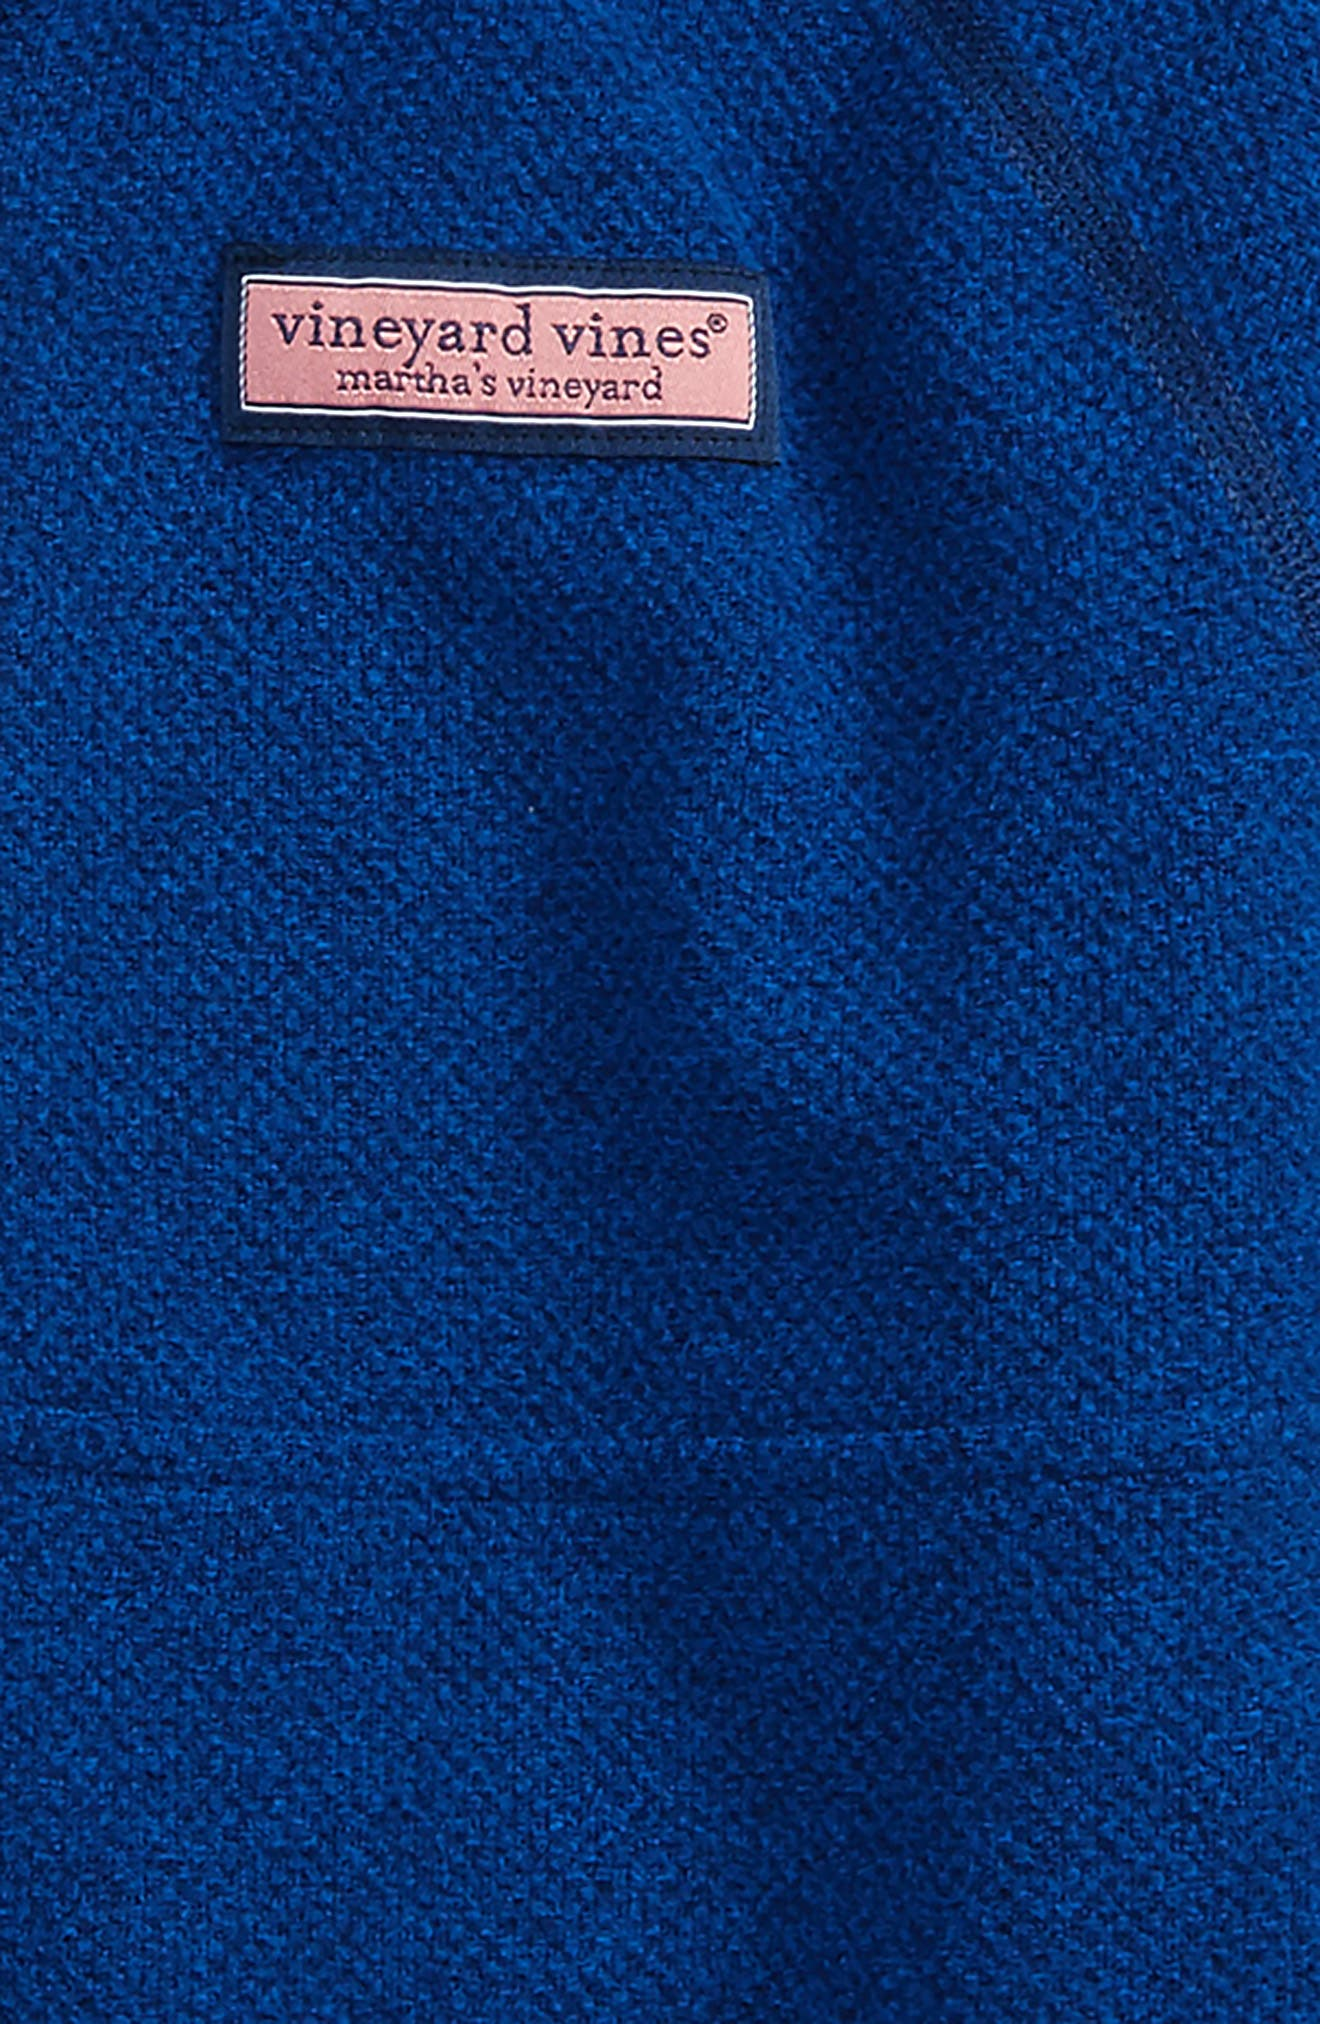 Alternate Image 2  - vineyard vines Quarter Zip Sweater (Big Boys)